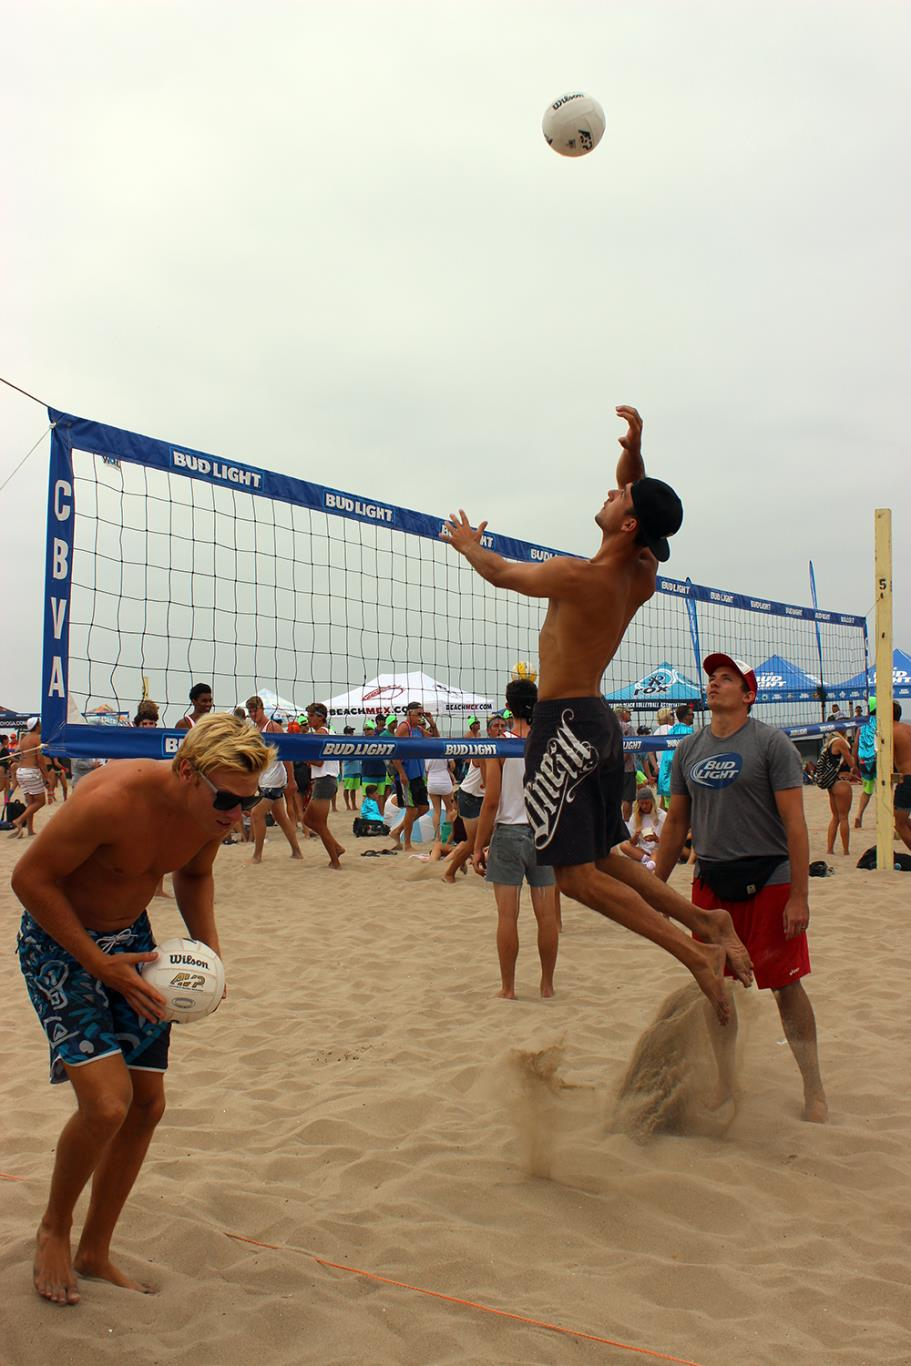 Charlie Saikley 6-Man Beach Volleyball Tournament